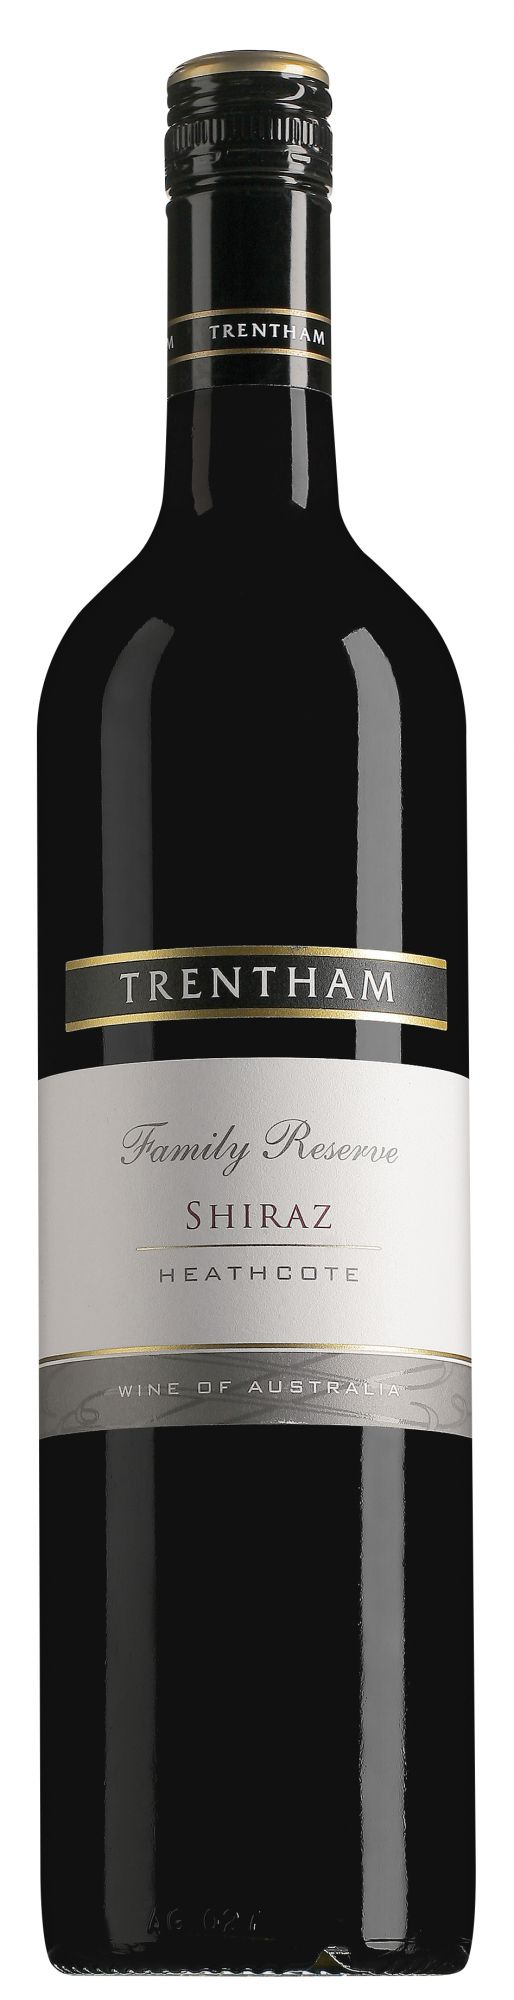 Trentham Estate Heathcote Family Reserve Shiraz